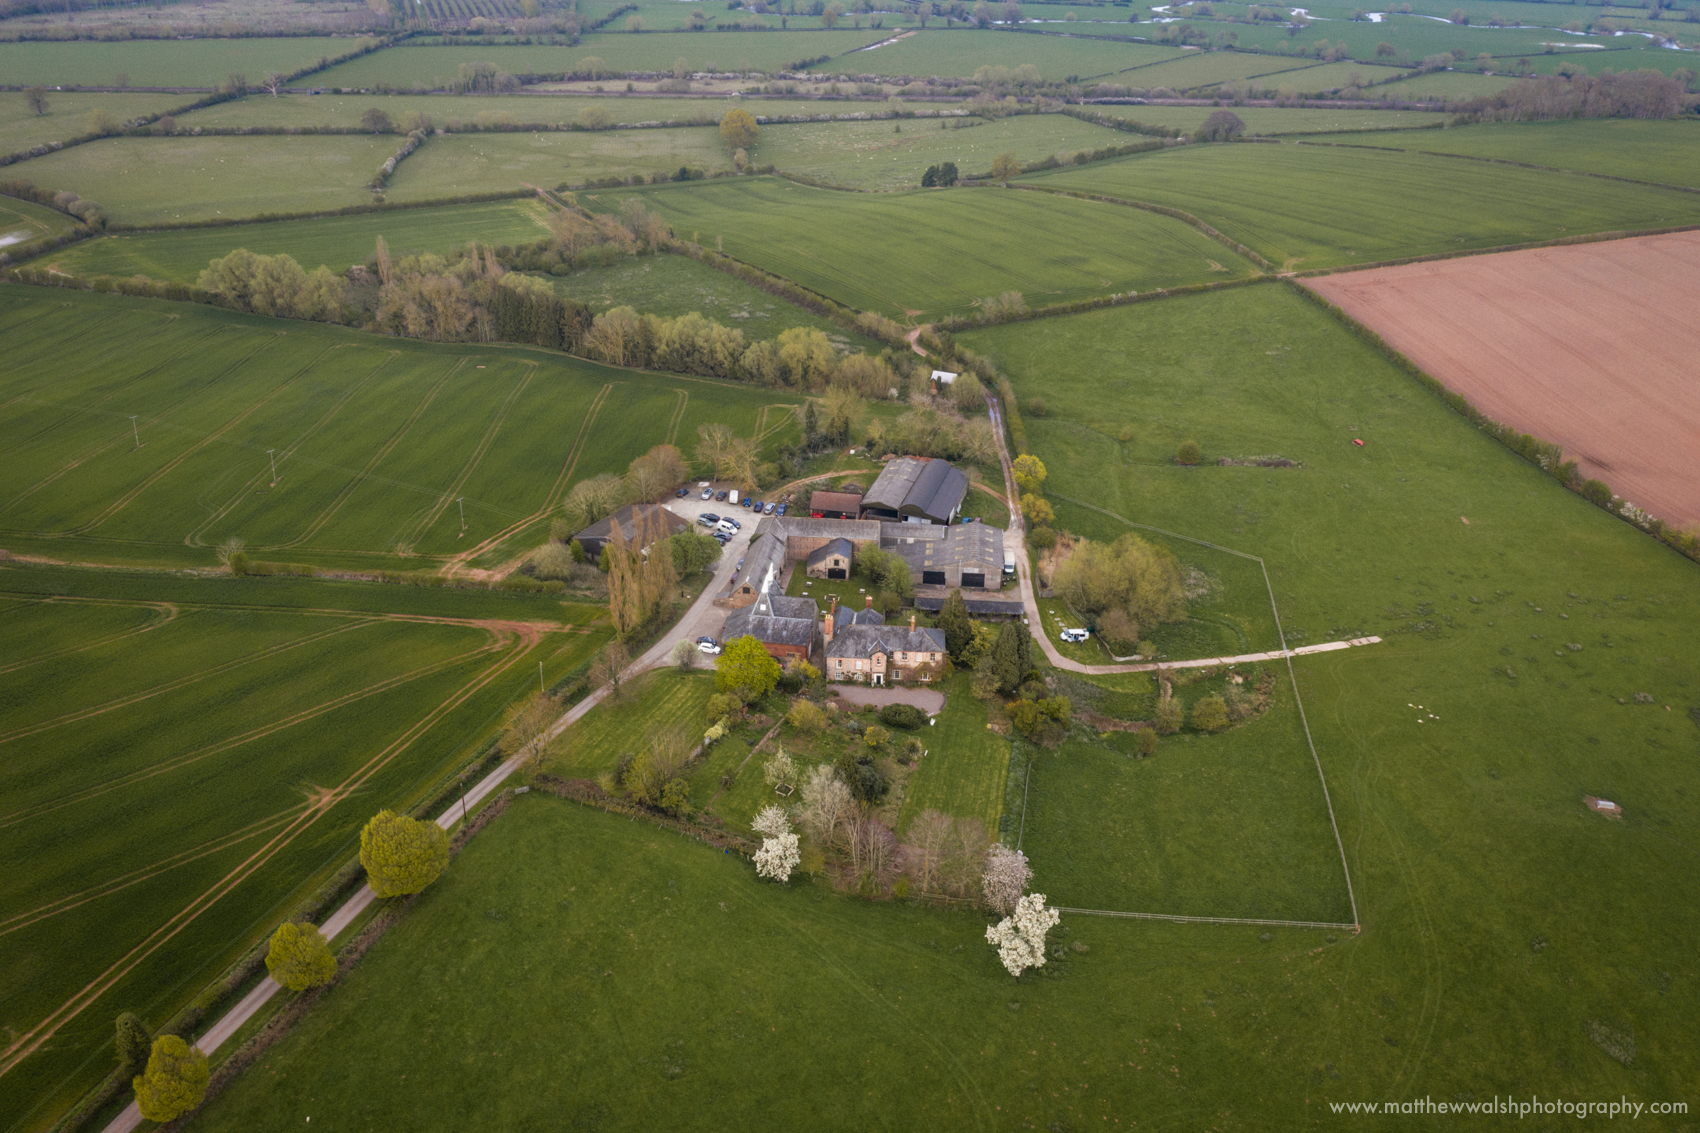 A closing shot of Lyde Court taken from the air